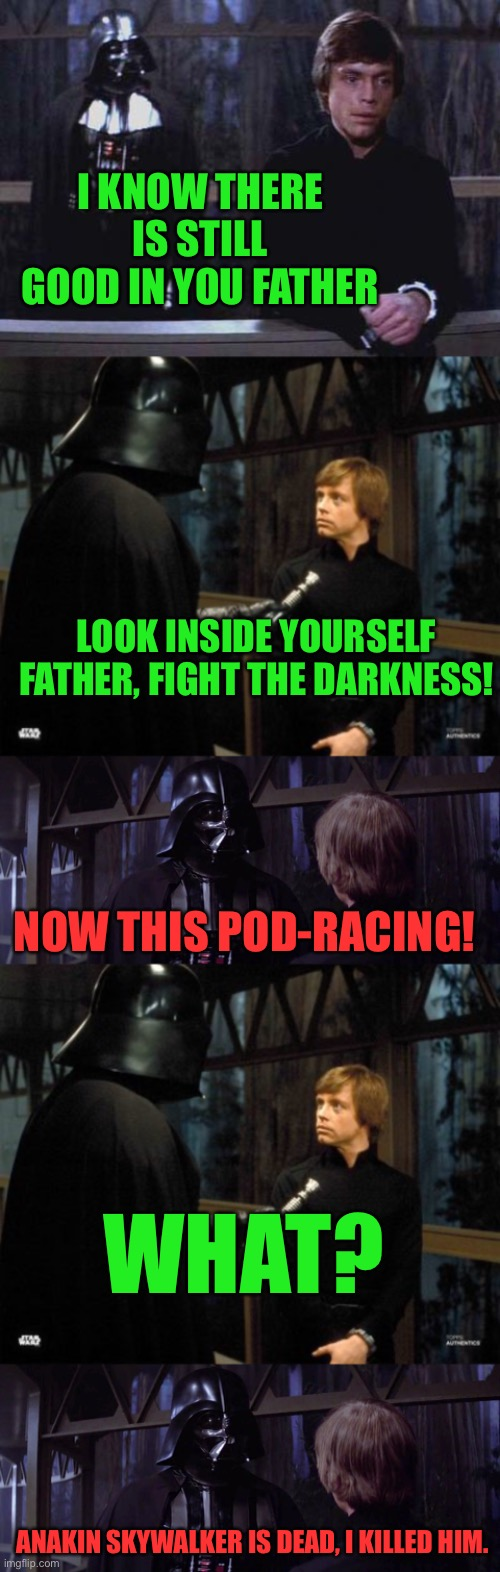 Darth Pod-Racer |  I KNOW THERE IS STILL GOOD IN YOU FATHER; LOOK INSIDE YOURSELF FATHER, FIGHT THE DARKNESS! NOW THIS POD-RACING! WHAT? ANAKIN SKYWALKER IS DEAD, I KILLED HIM. | image tagged in star wars,darth vader,luke skywalker,now this is pod-racing,return of the jedi,anakin skywalker | made w/ Imgflip meme maker